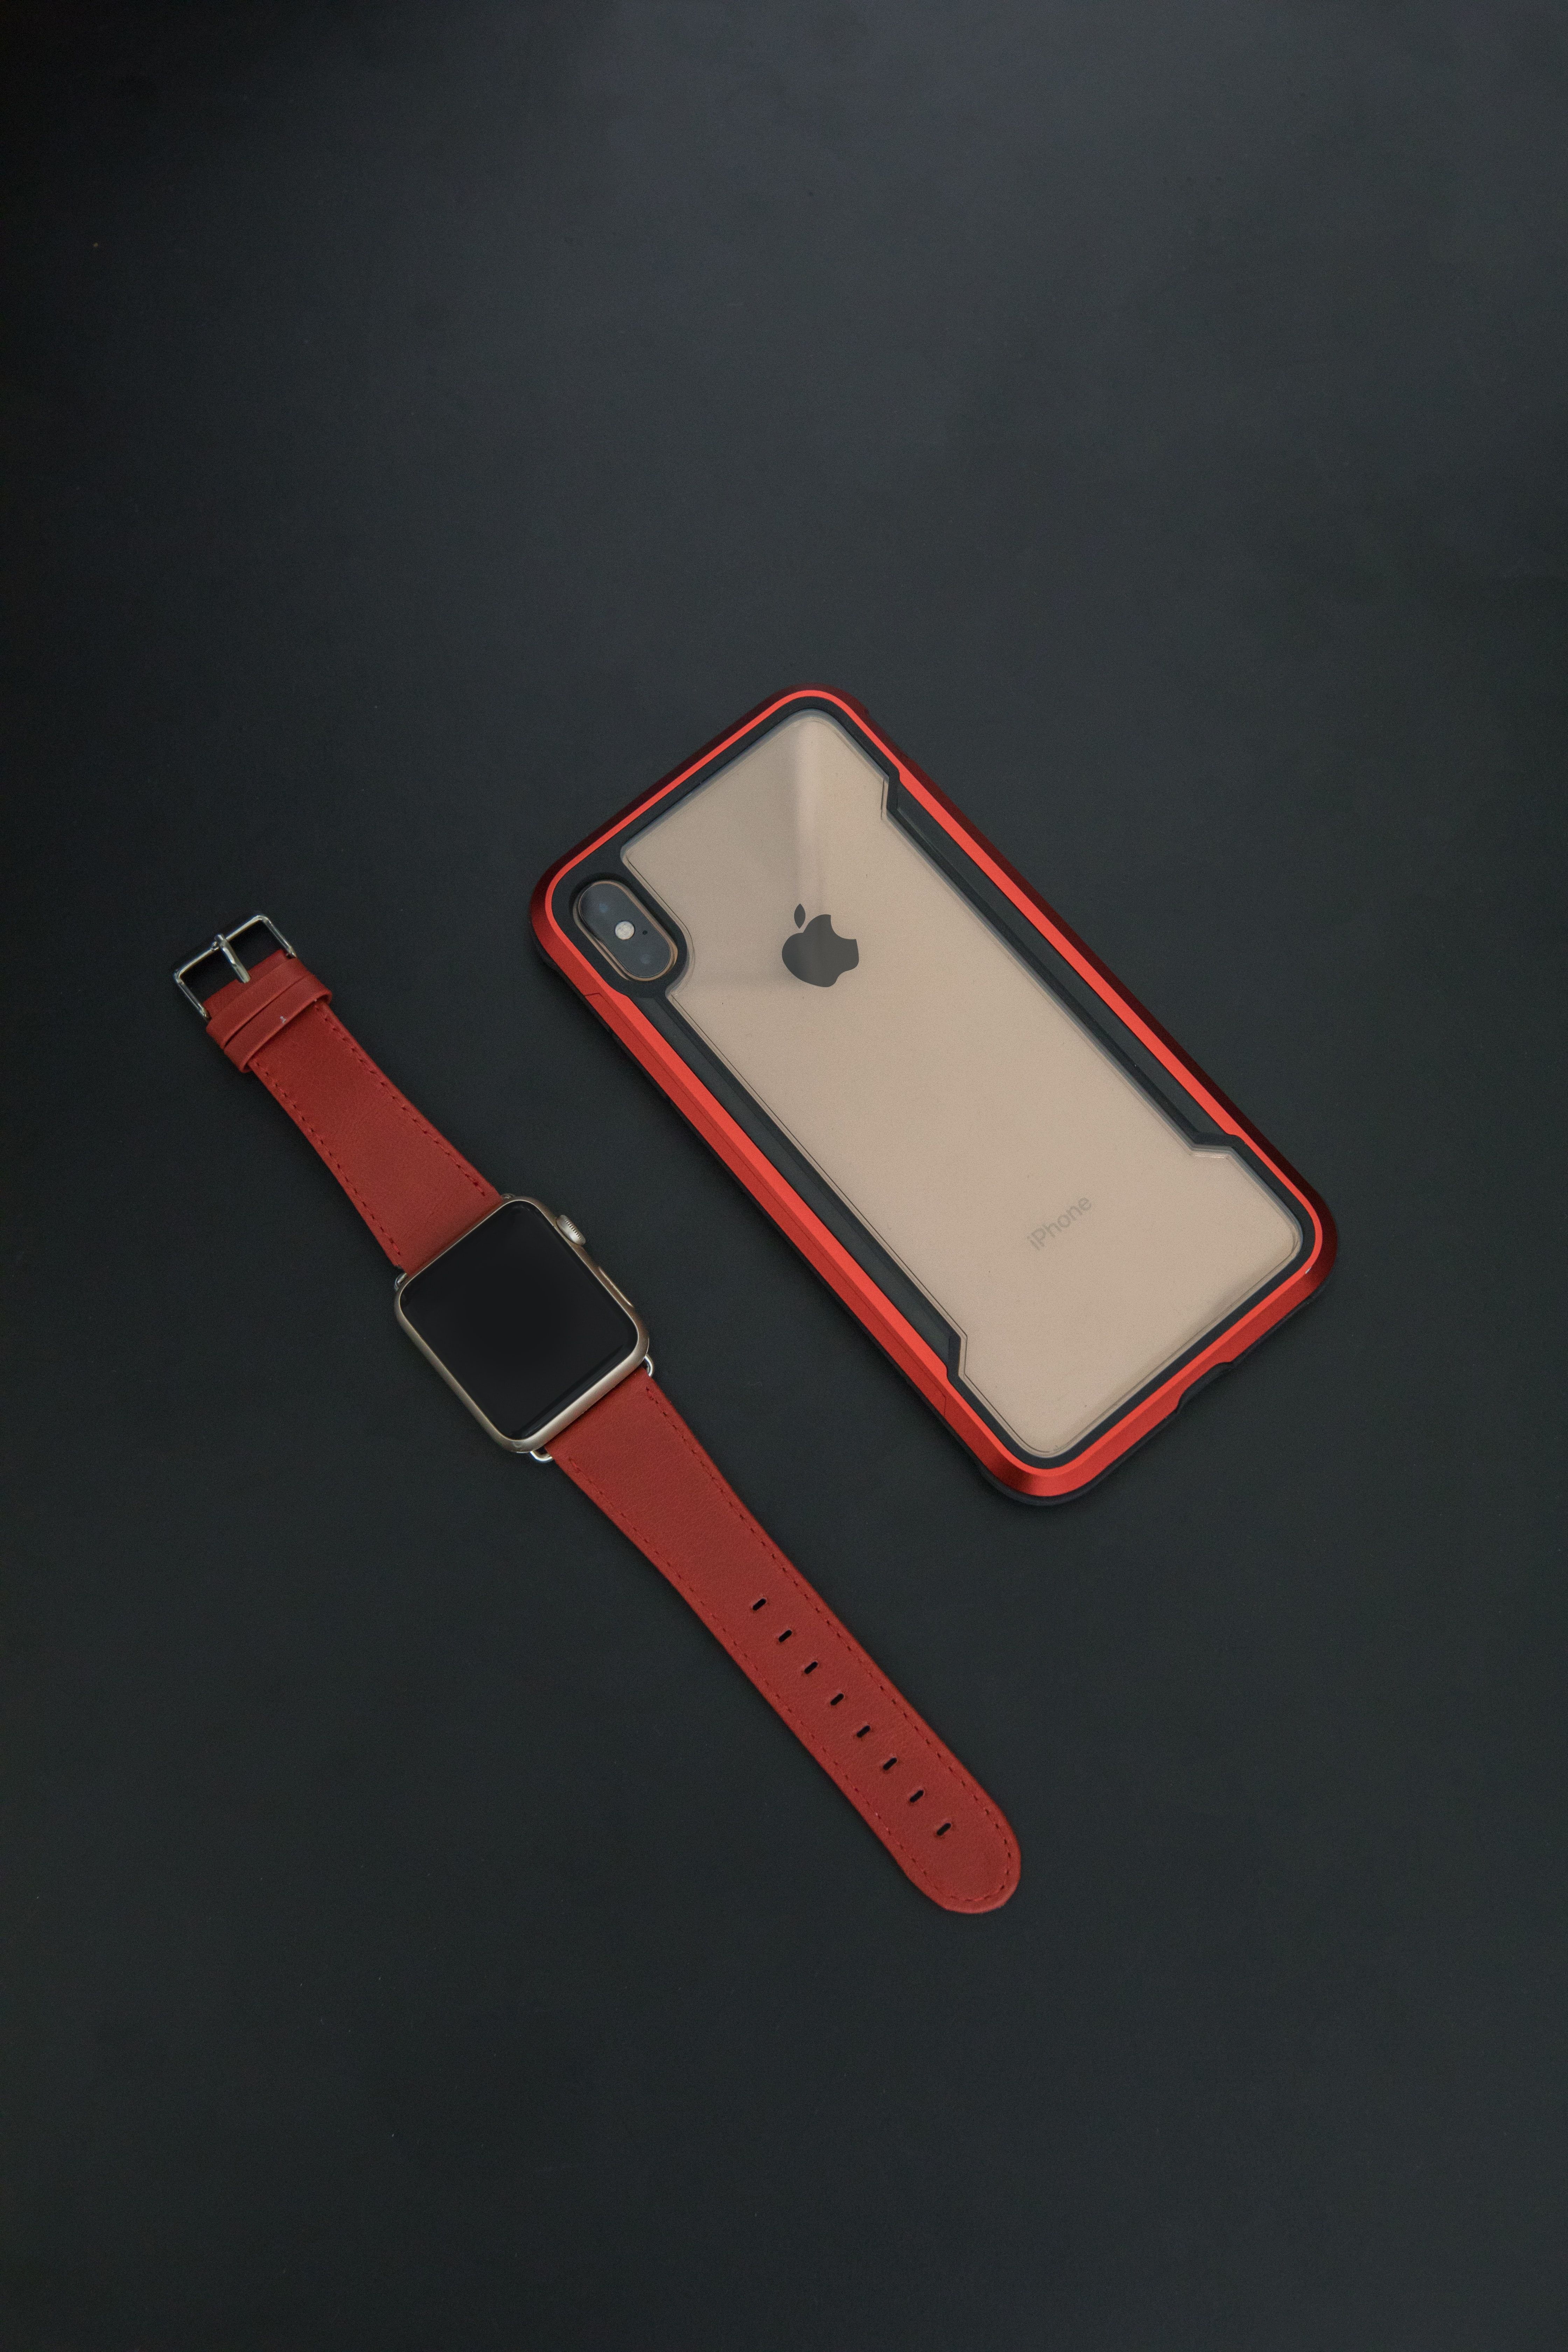 Strap Phnom Penh Cambodia Silver Iphone X Silver Iphone X Red And Black Do You Love I Black Wallpaper Iphone Black Iphone Background Black Wallpaper